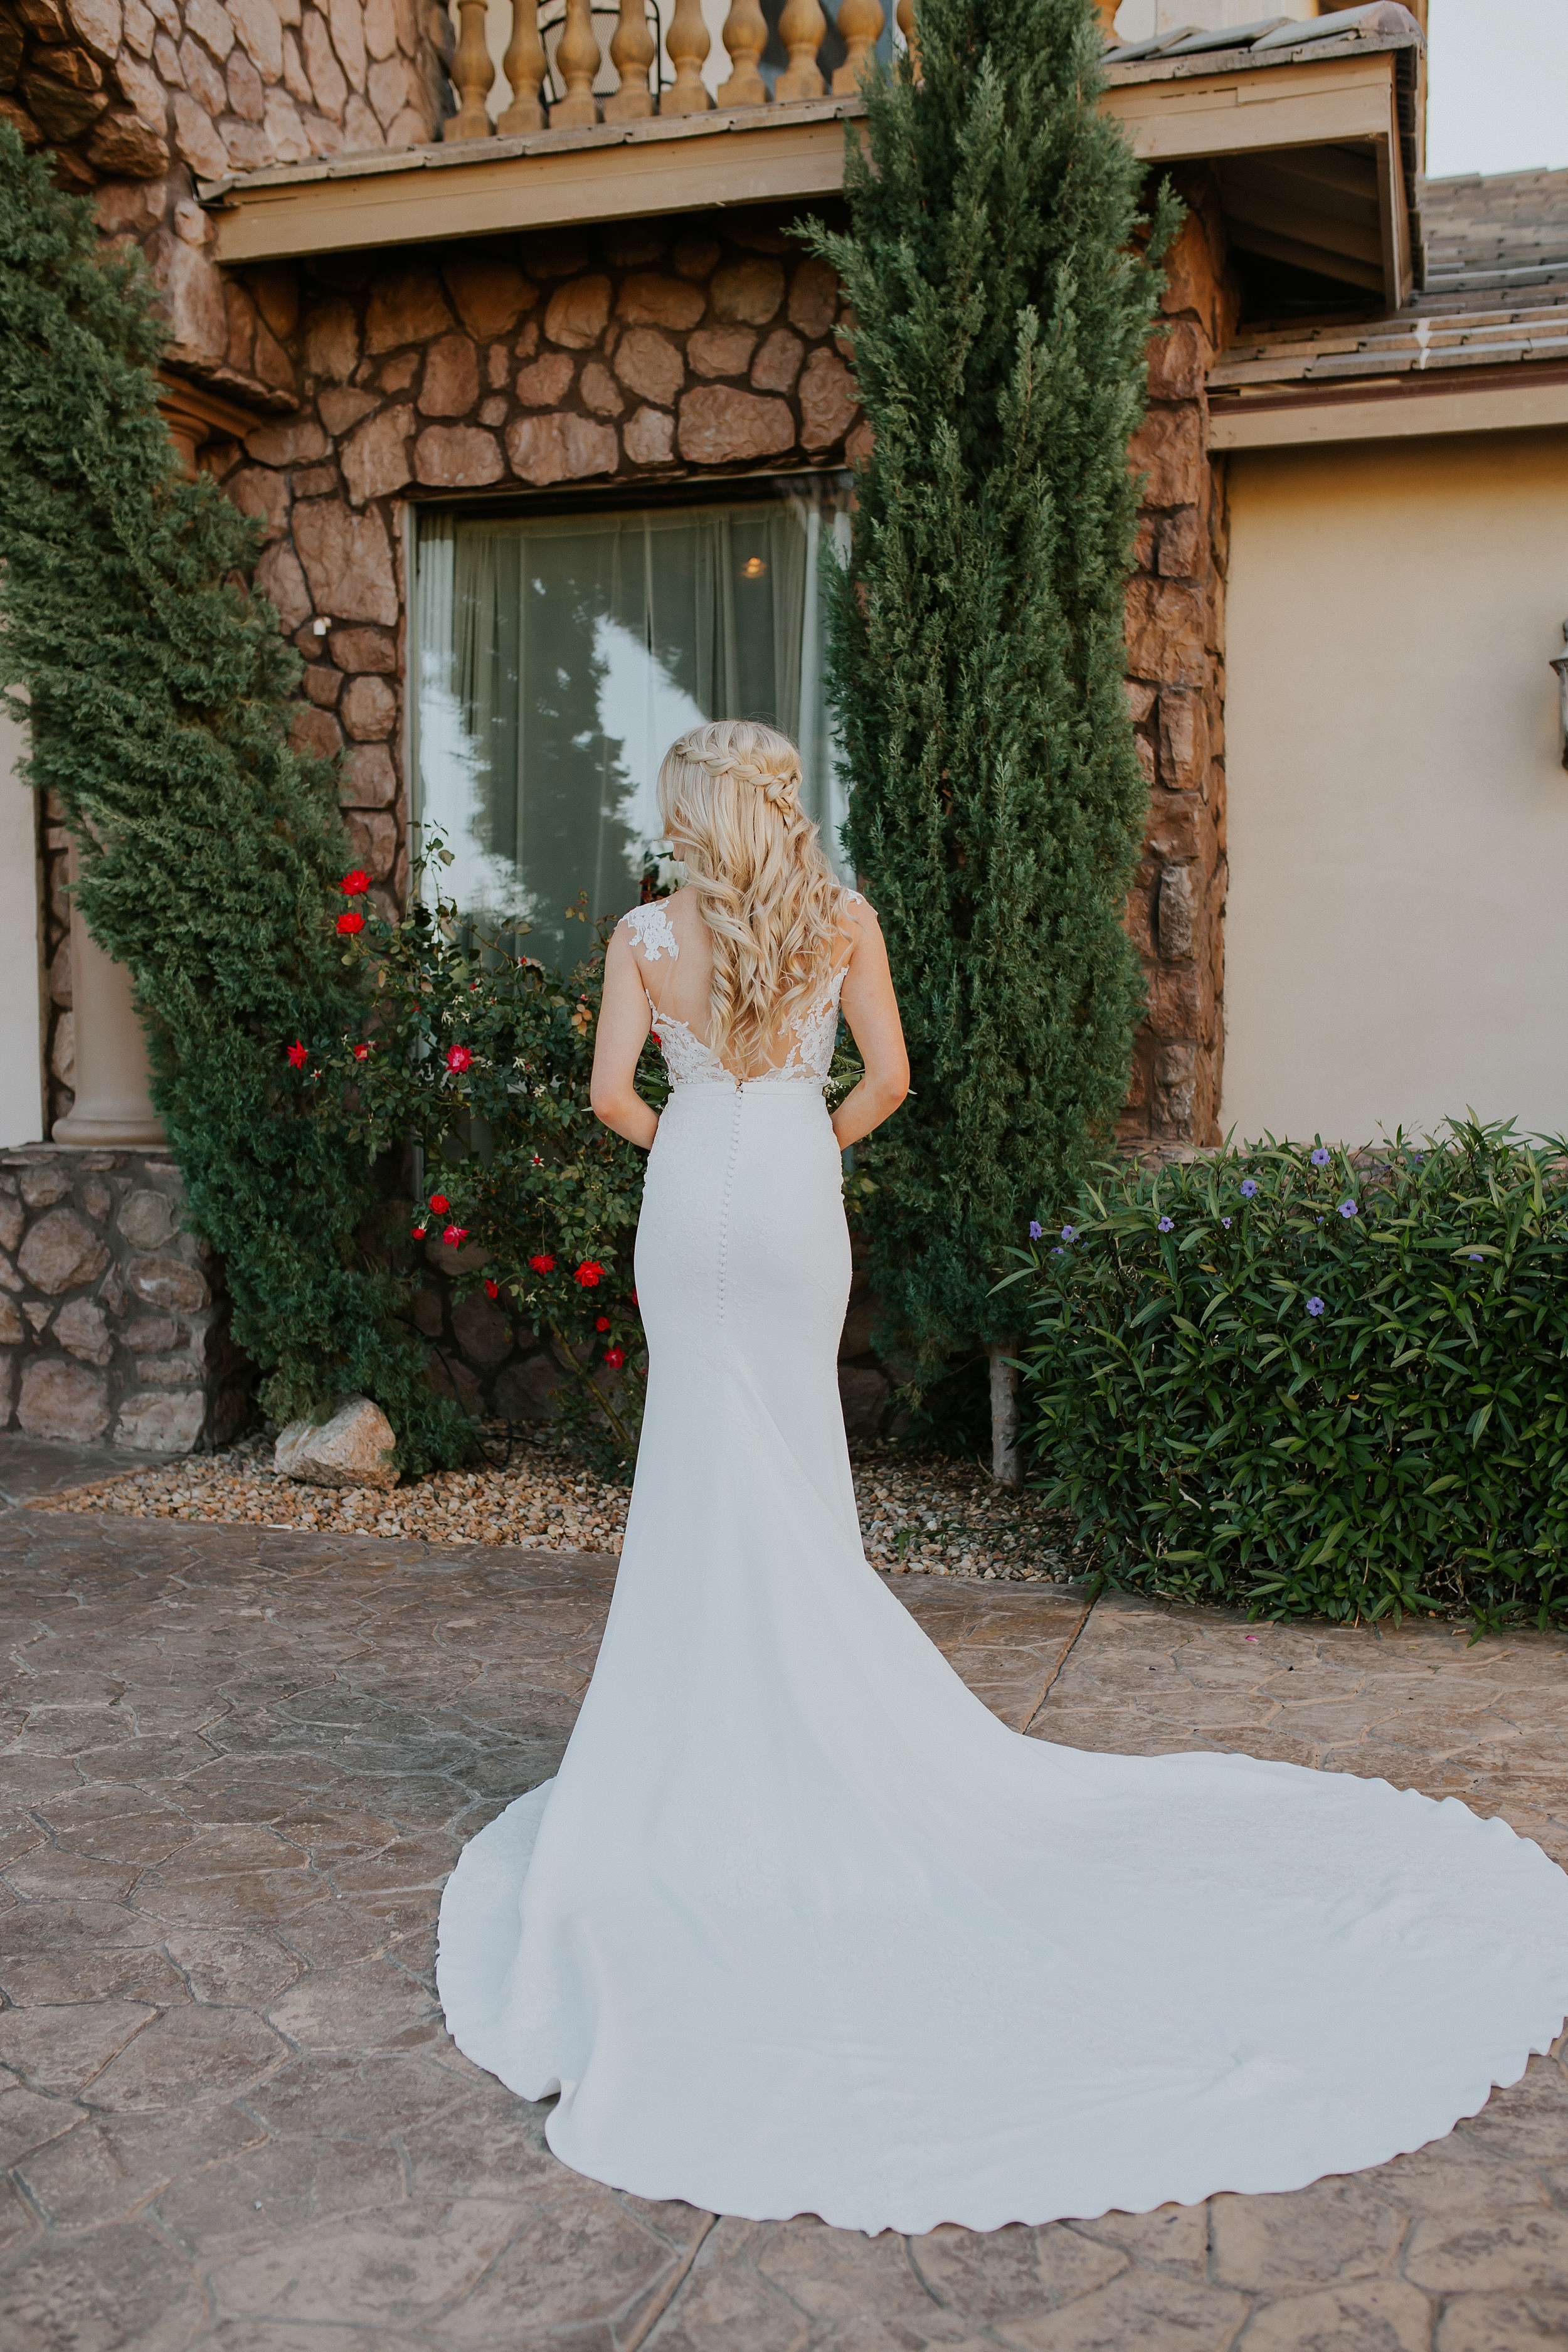 Meg+Bubba_Wedding_WeddingParty_Arizona-42.jpg